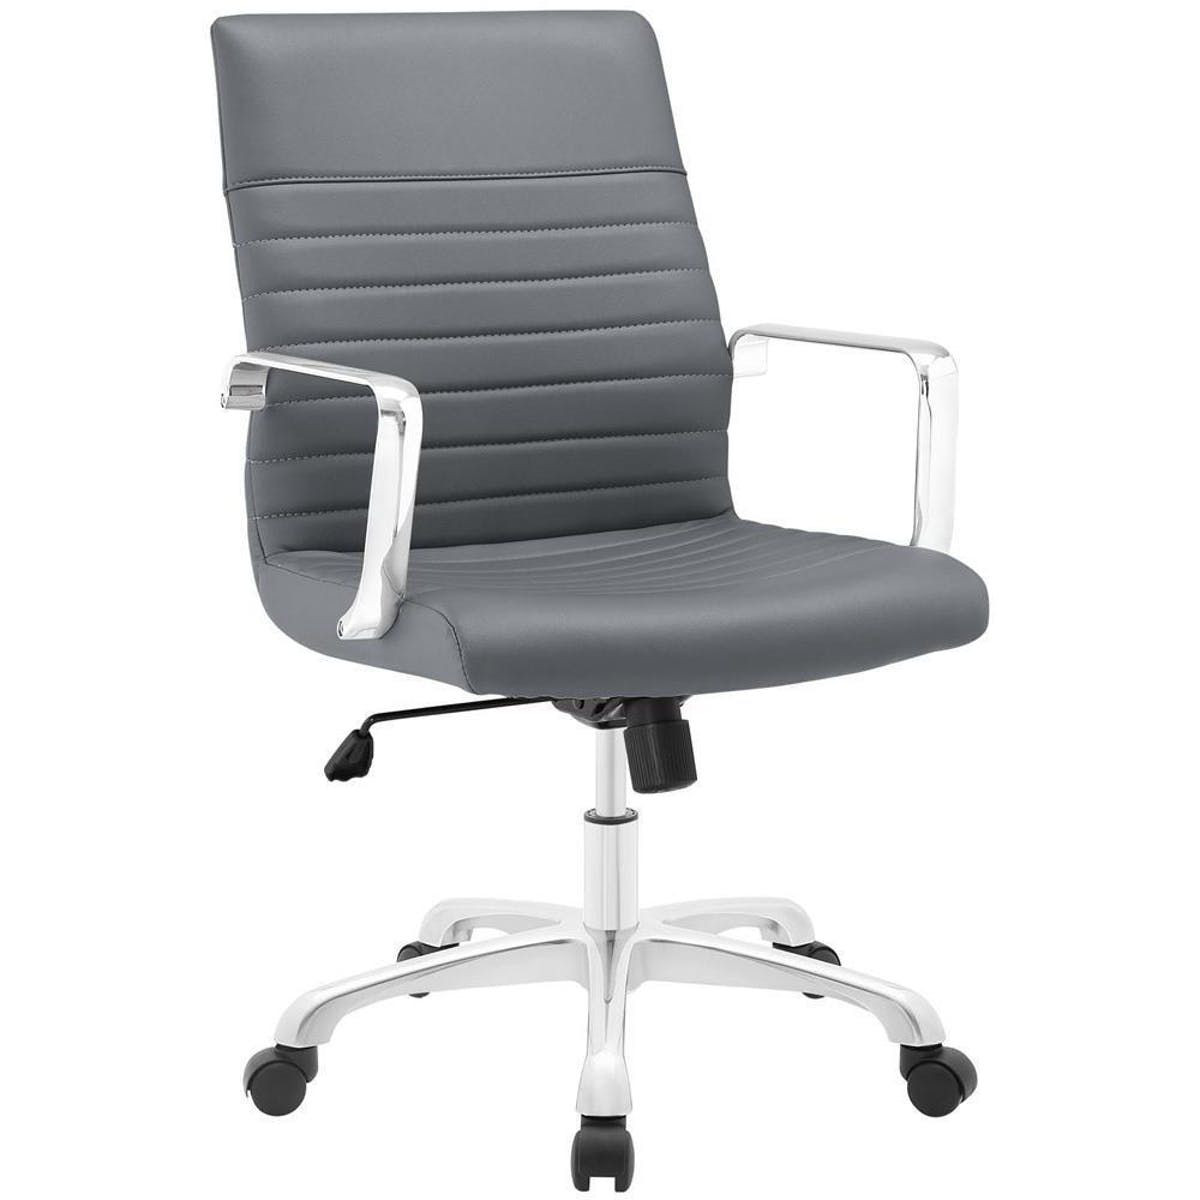 Modway Finesse Mid Back Office Chair Modern Office Chair Office Chair Black Office Chair